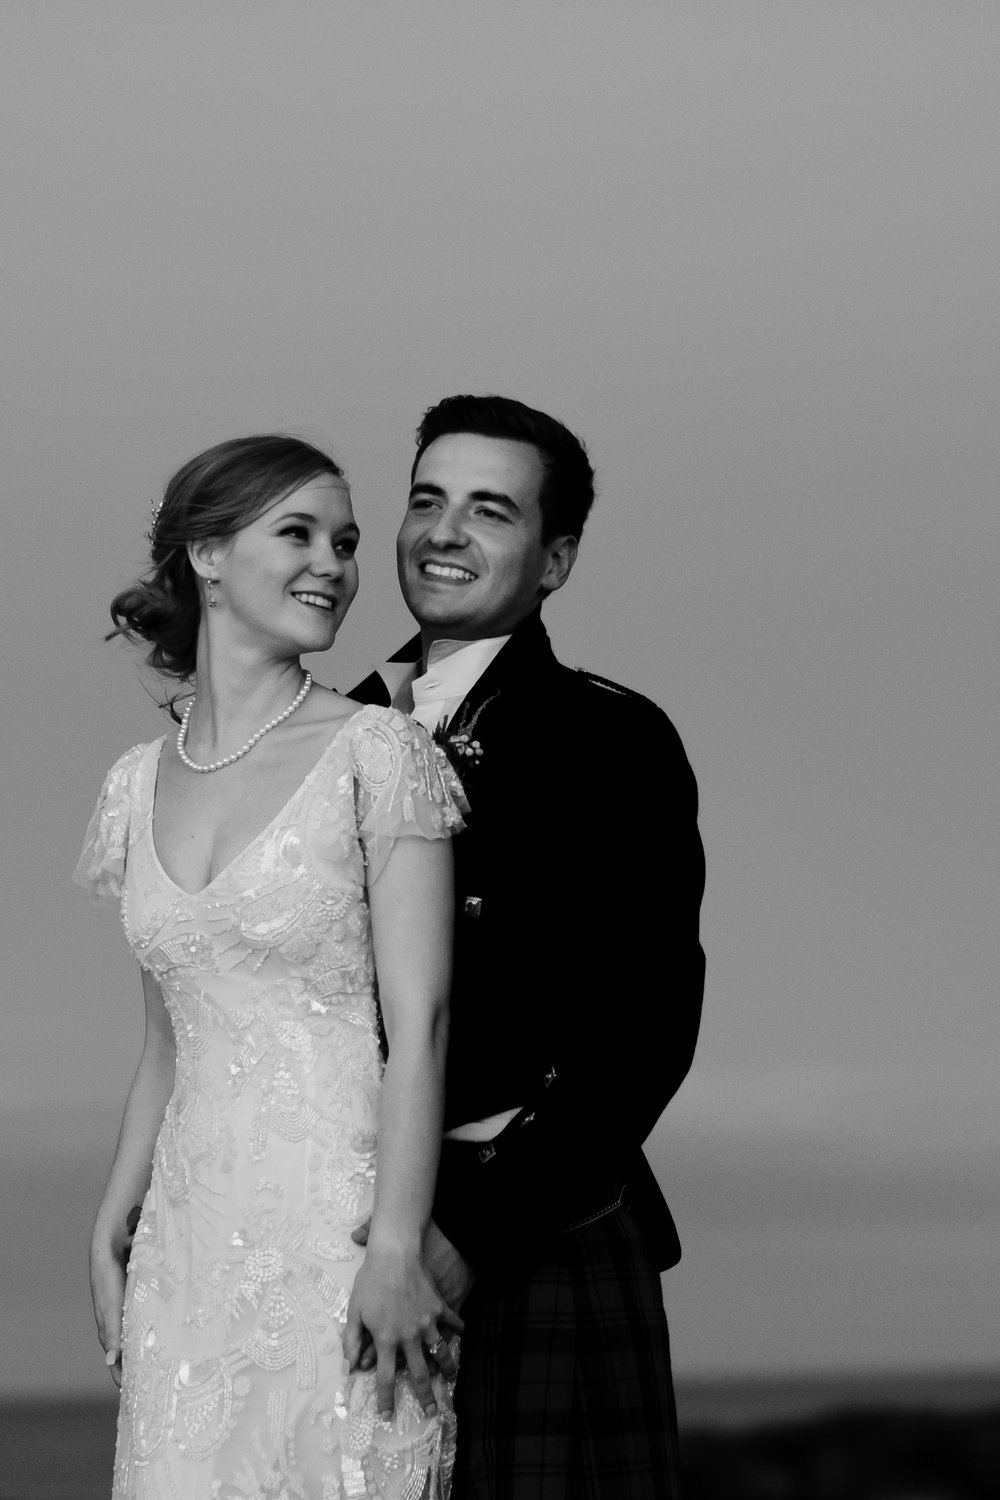 An elegant bride is smiling at her husband who is hugging her.